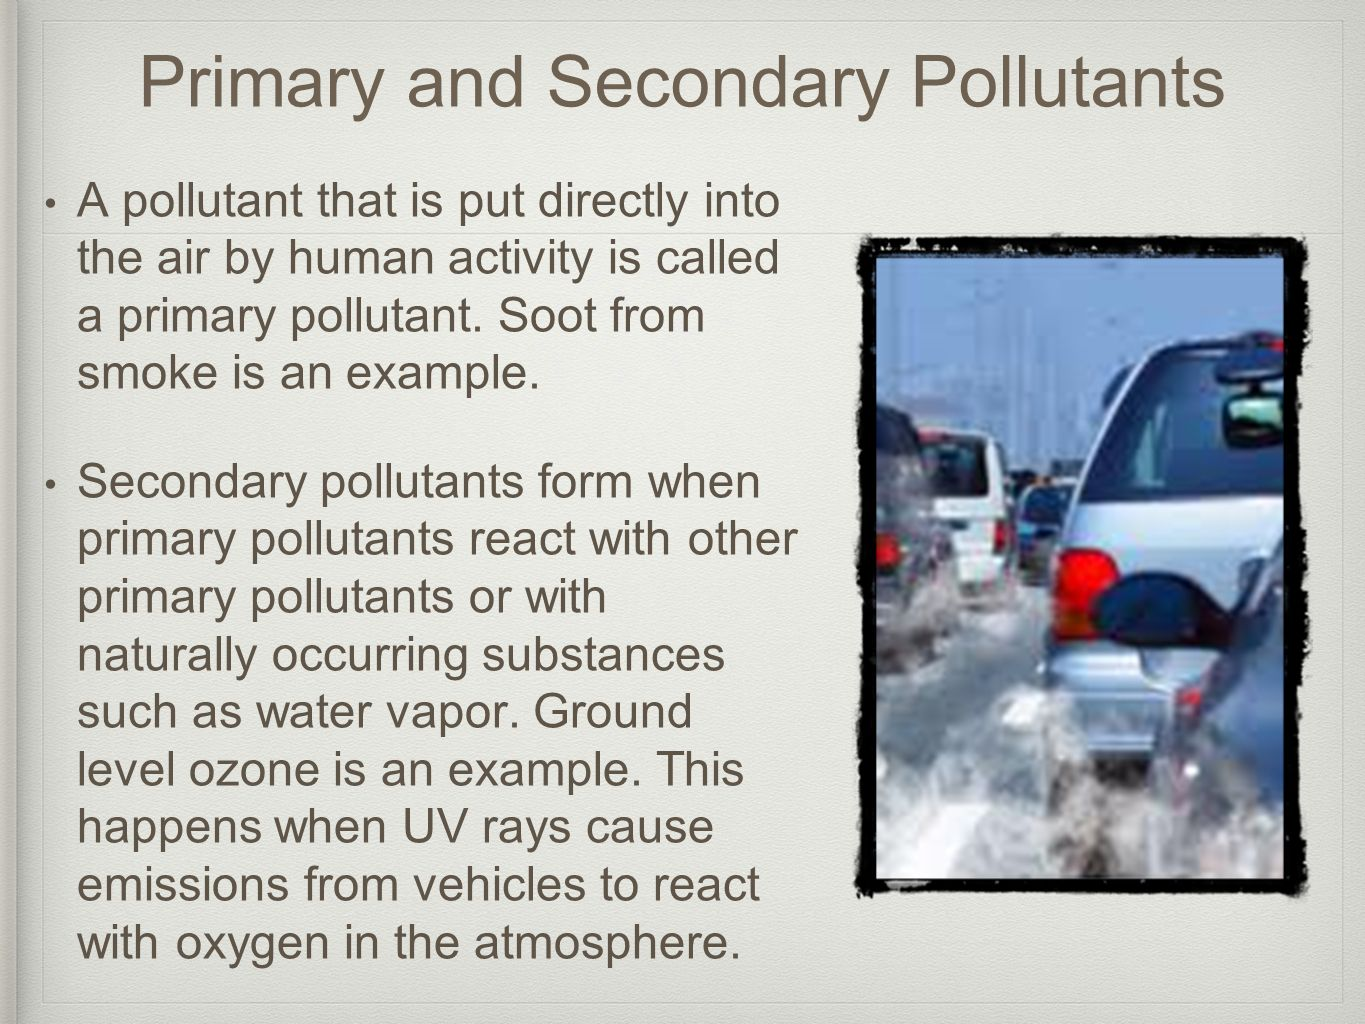 Primary and Secondary Pollutants